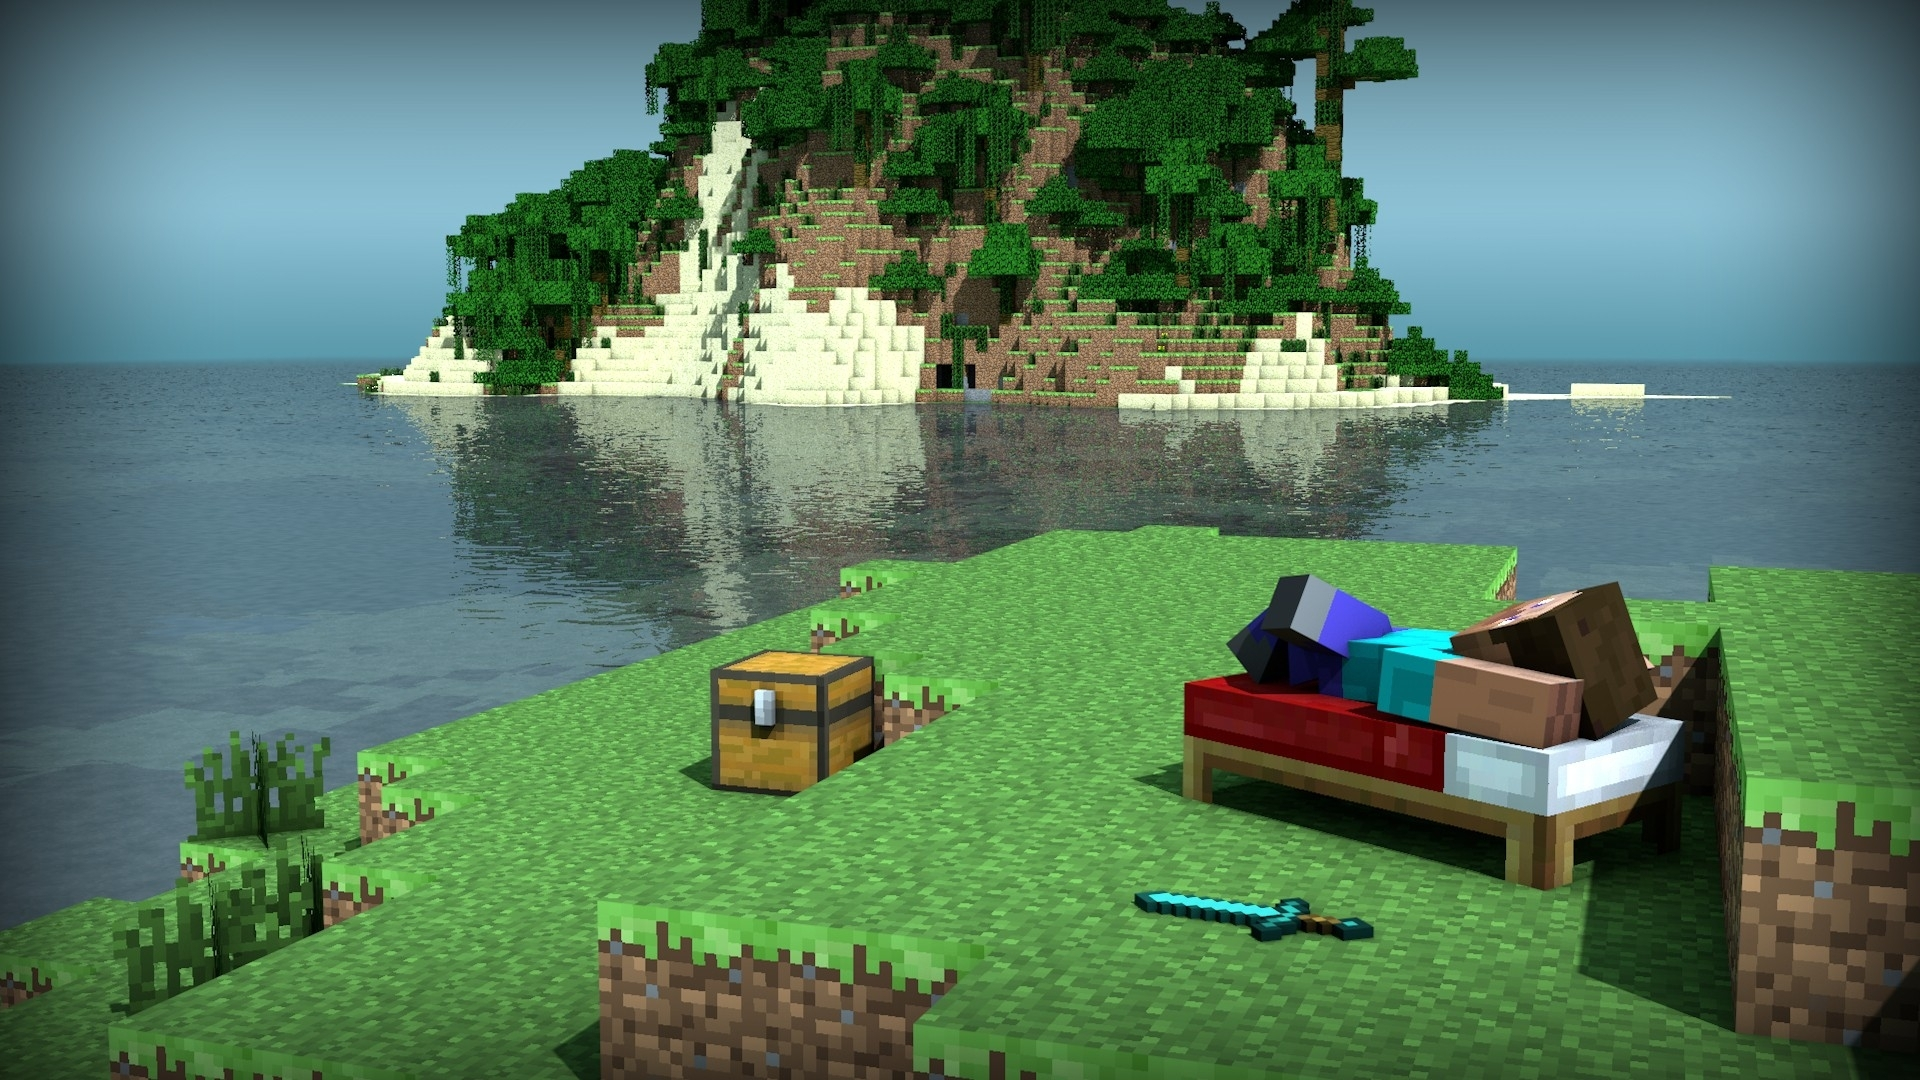 minecraft full hd wallpaper and background image | 1920x1080 | id:246225